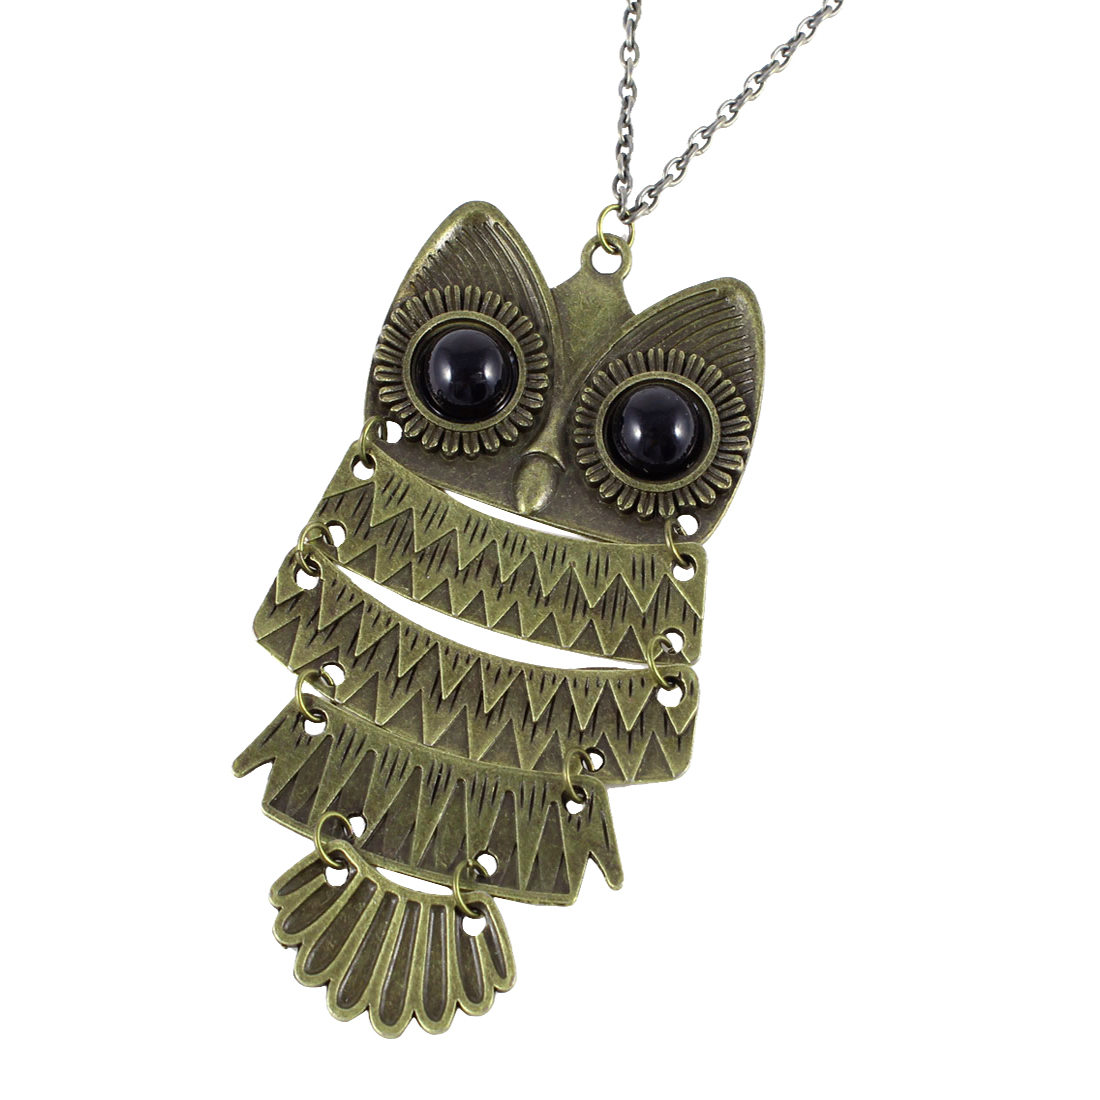 Bronze Tone Retro Owl Pendant Necklace for Ladies